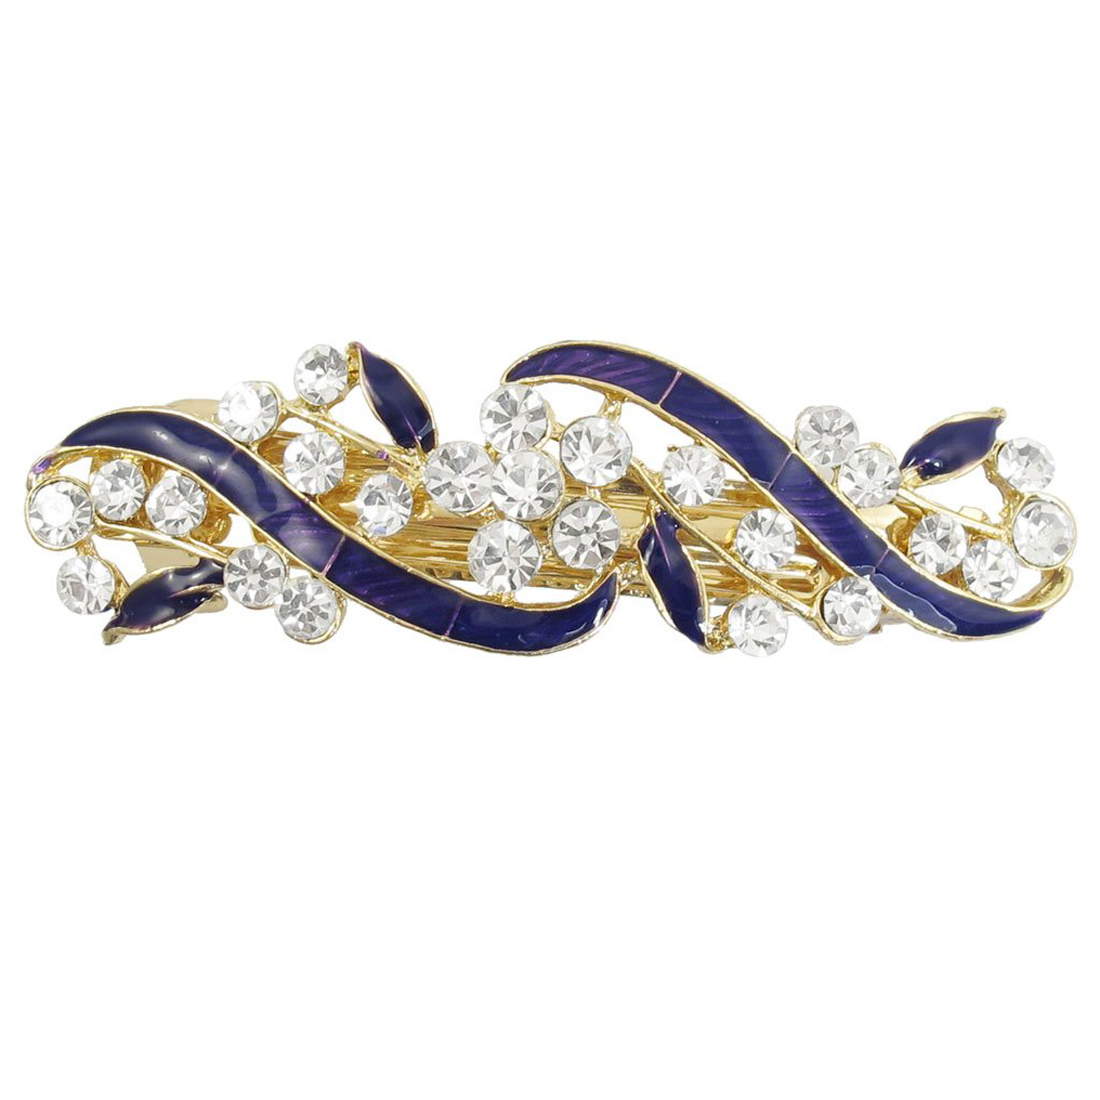 Gold Tone Metal French Clip Faux Crystal Inlaid Blue Hairclip Barrette